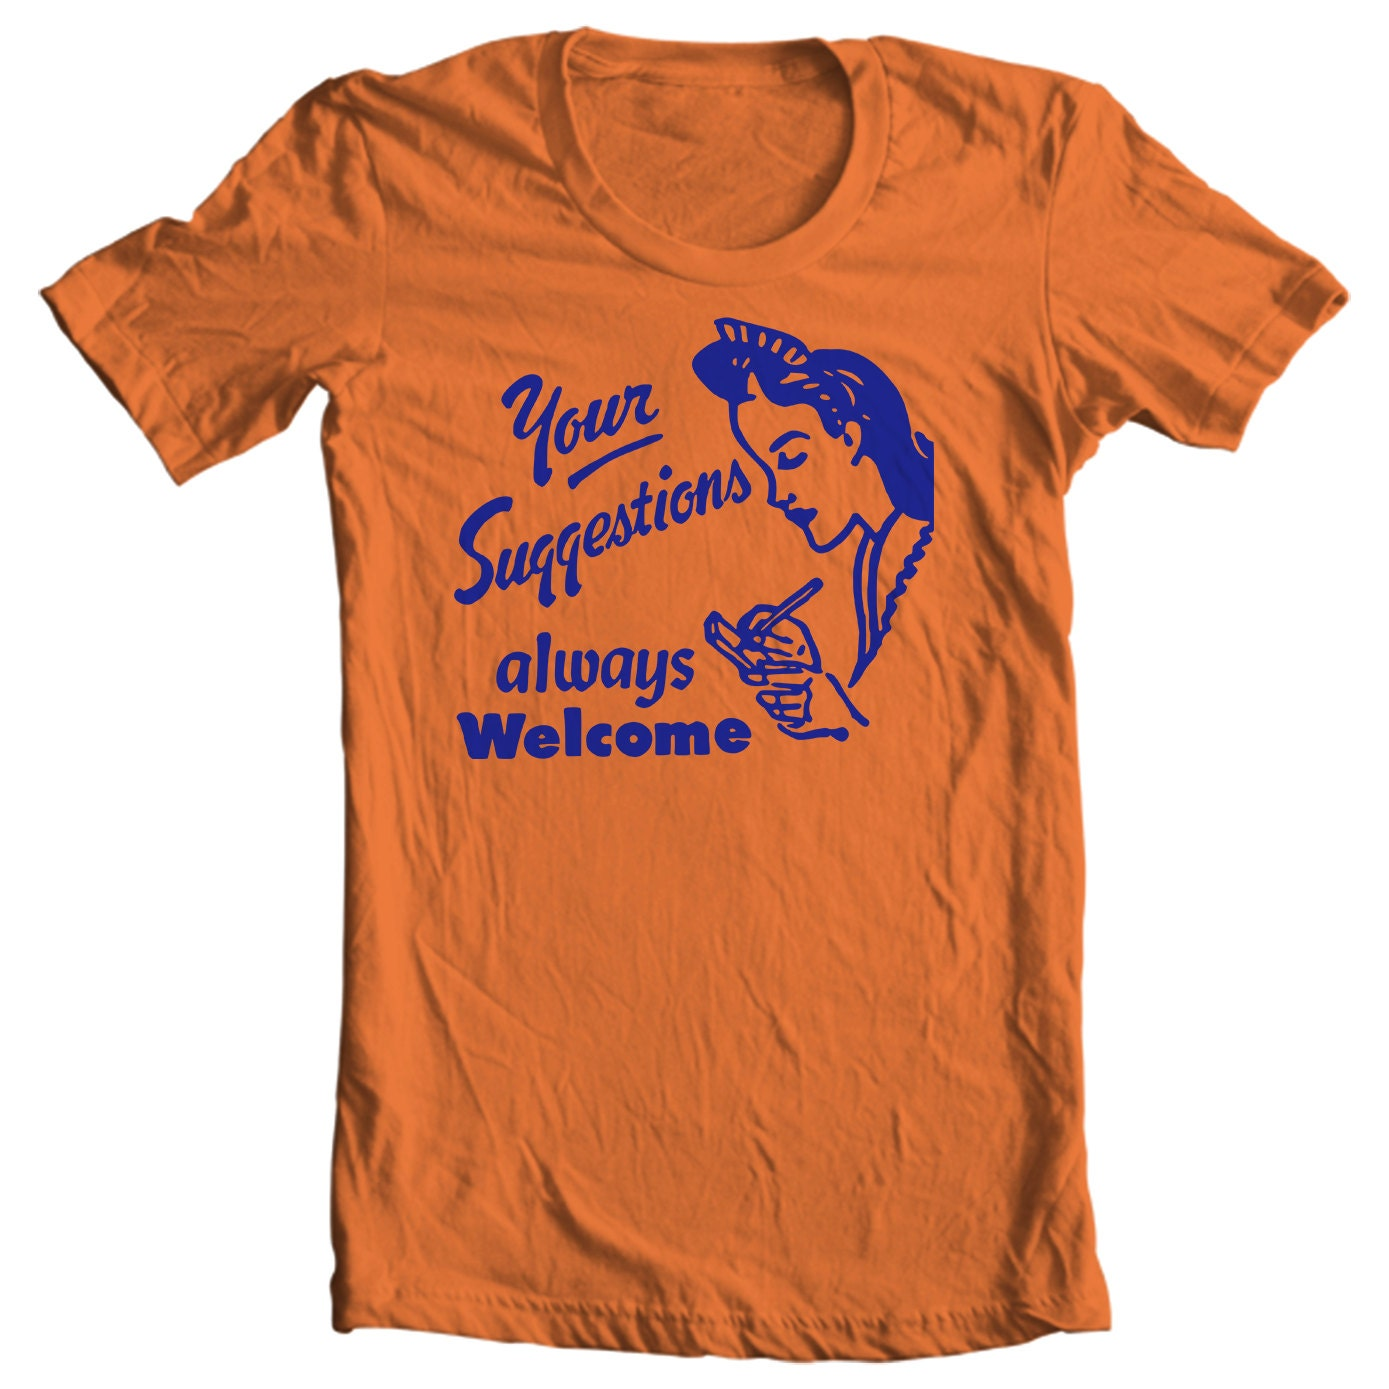 Your Suggestions Always Welcome Vintage Matchbook T-shirt